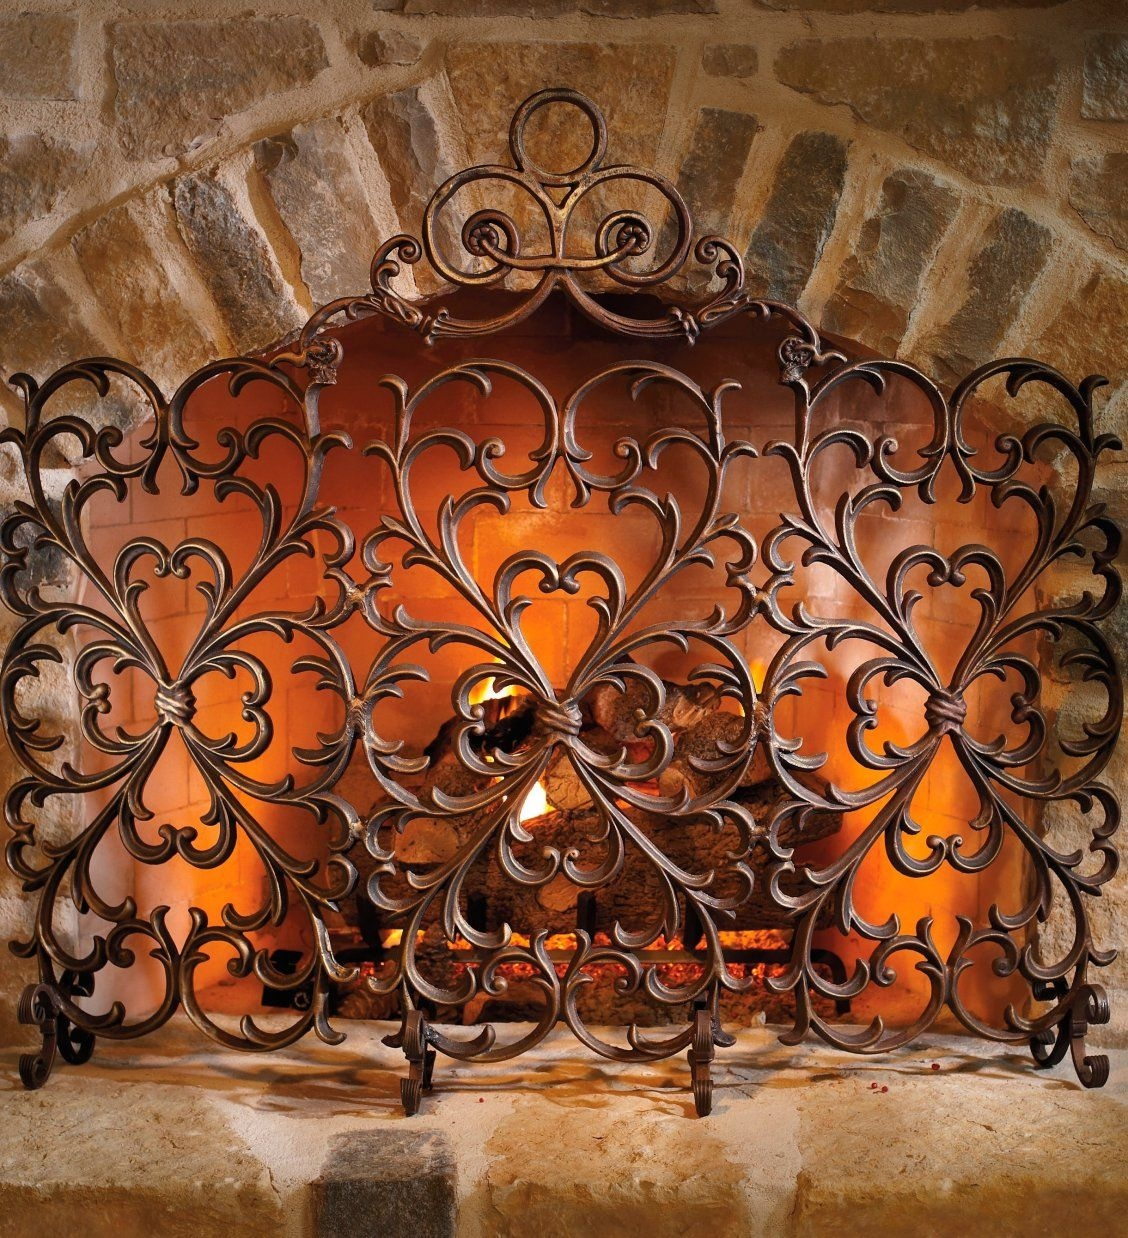 Wrought Iron Fireplace Screens Decorative Fire Screens Jpg